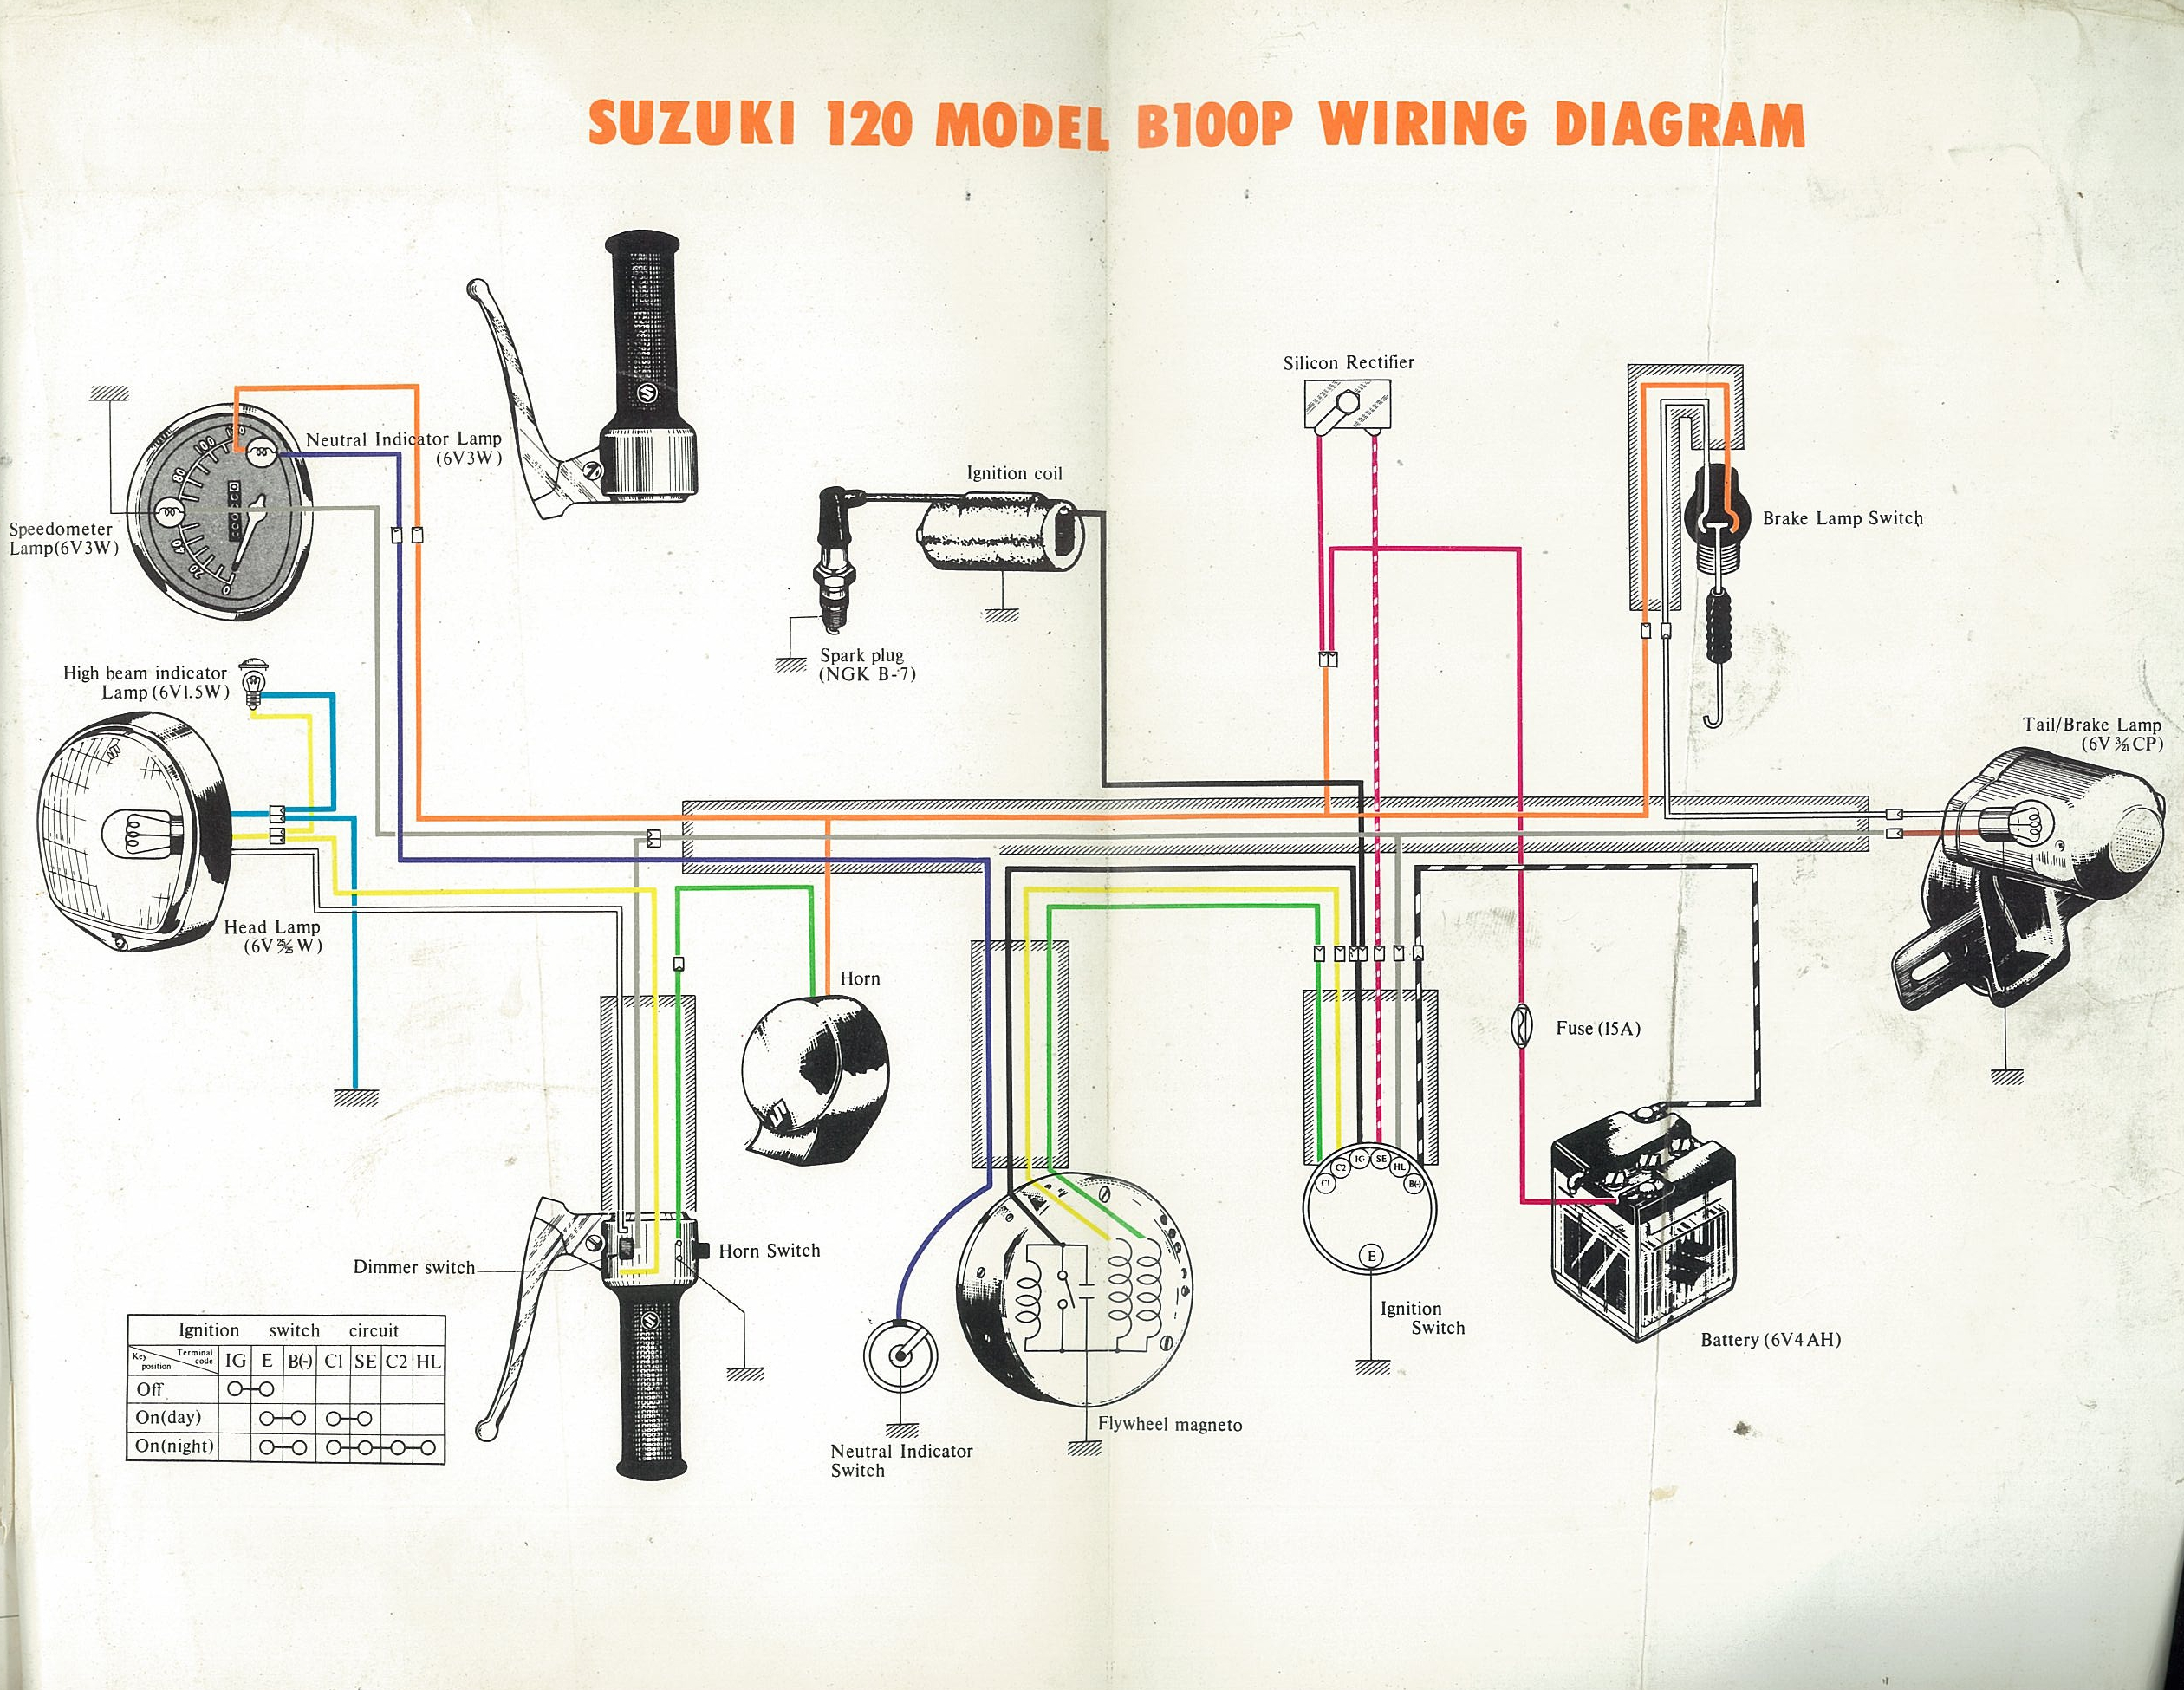 wiring diagram suzuki rv 90 wiring wiring diagrams online suzuki access engine diagram